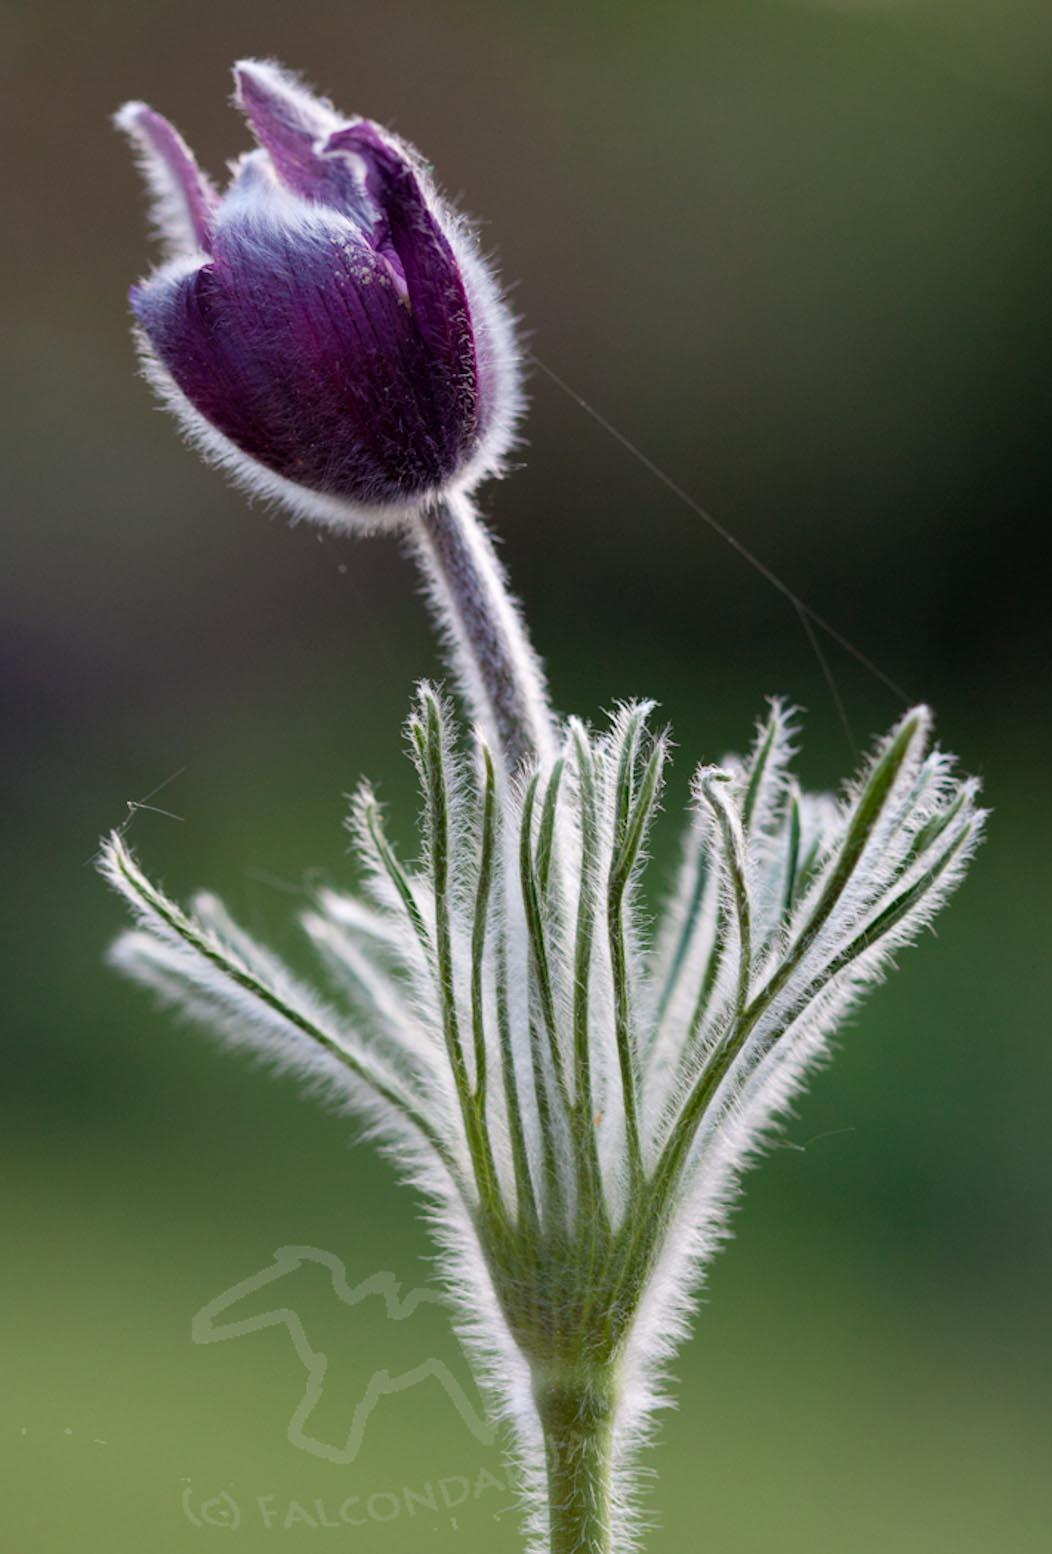 Judging a Photograph #3 When Perfect isn't Good Enough. Pasque flower in a photo competition. Different experiences of judging.